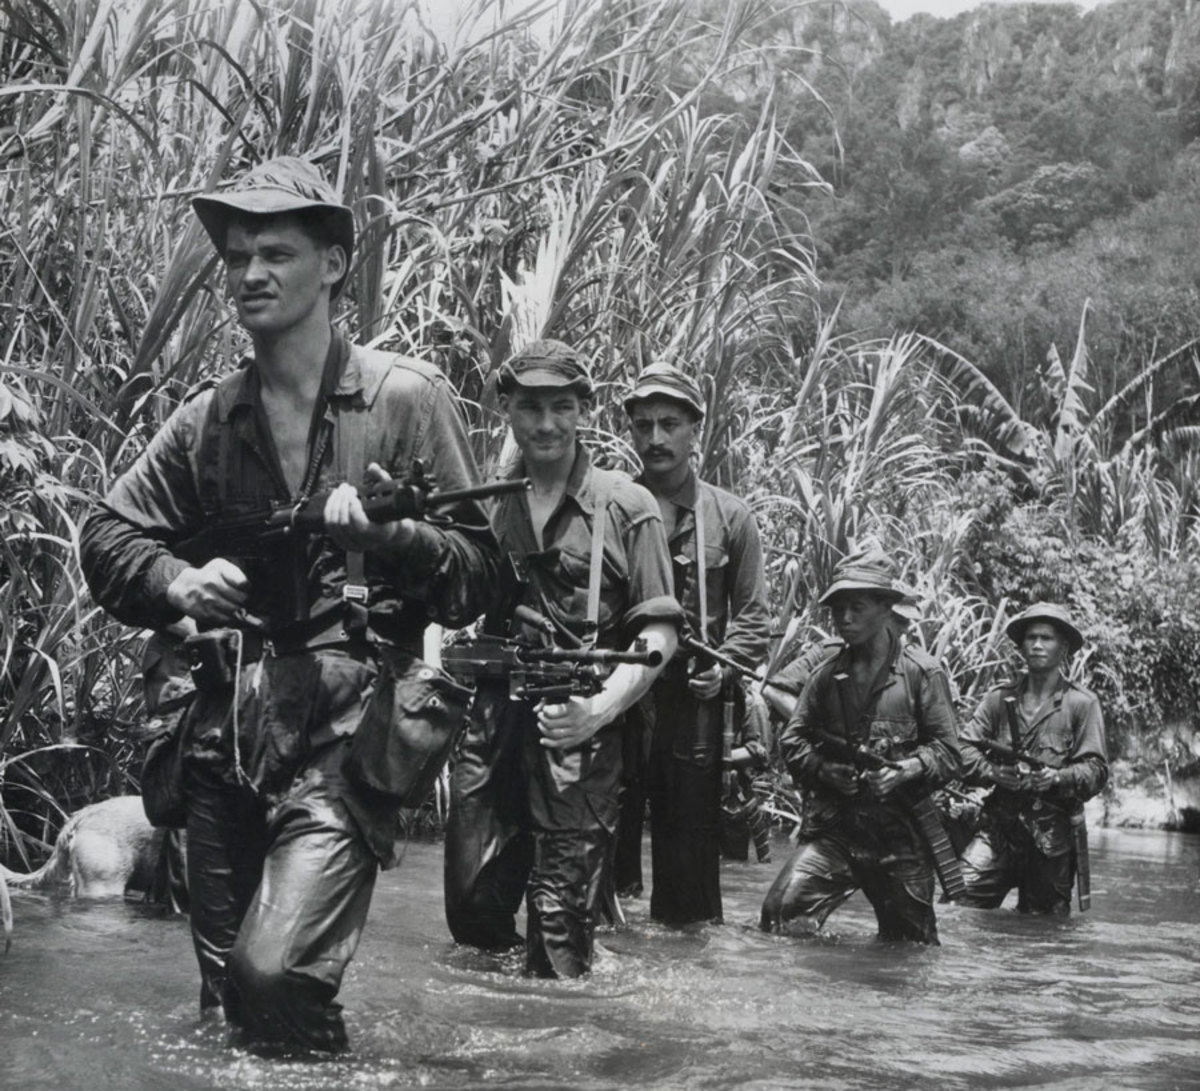 SAS trackers in the Malayan jungle in 1950